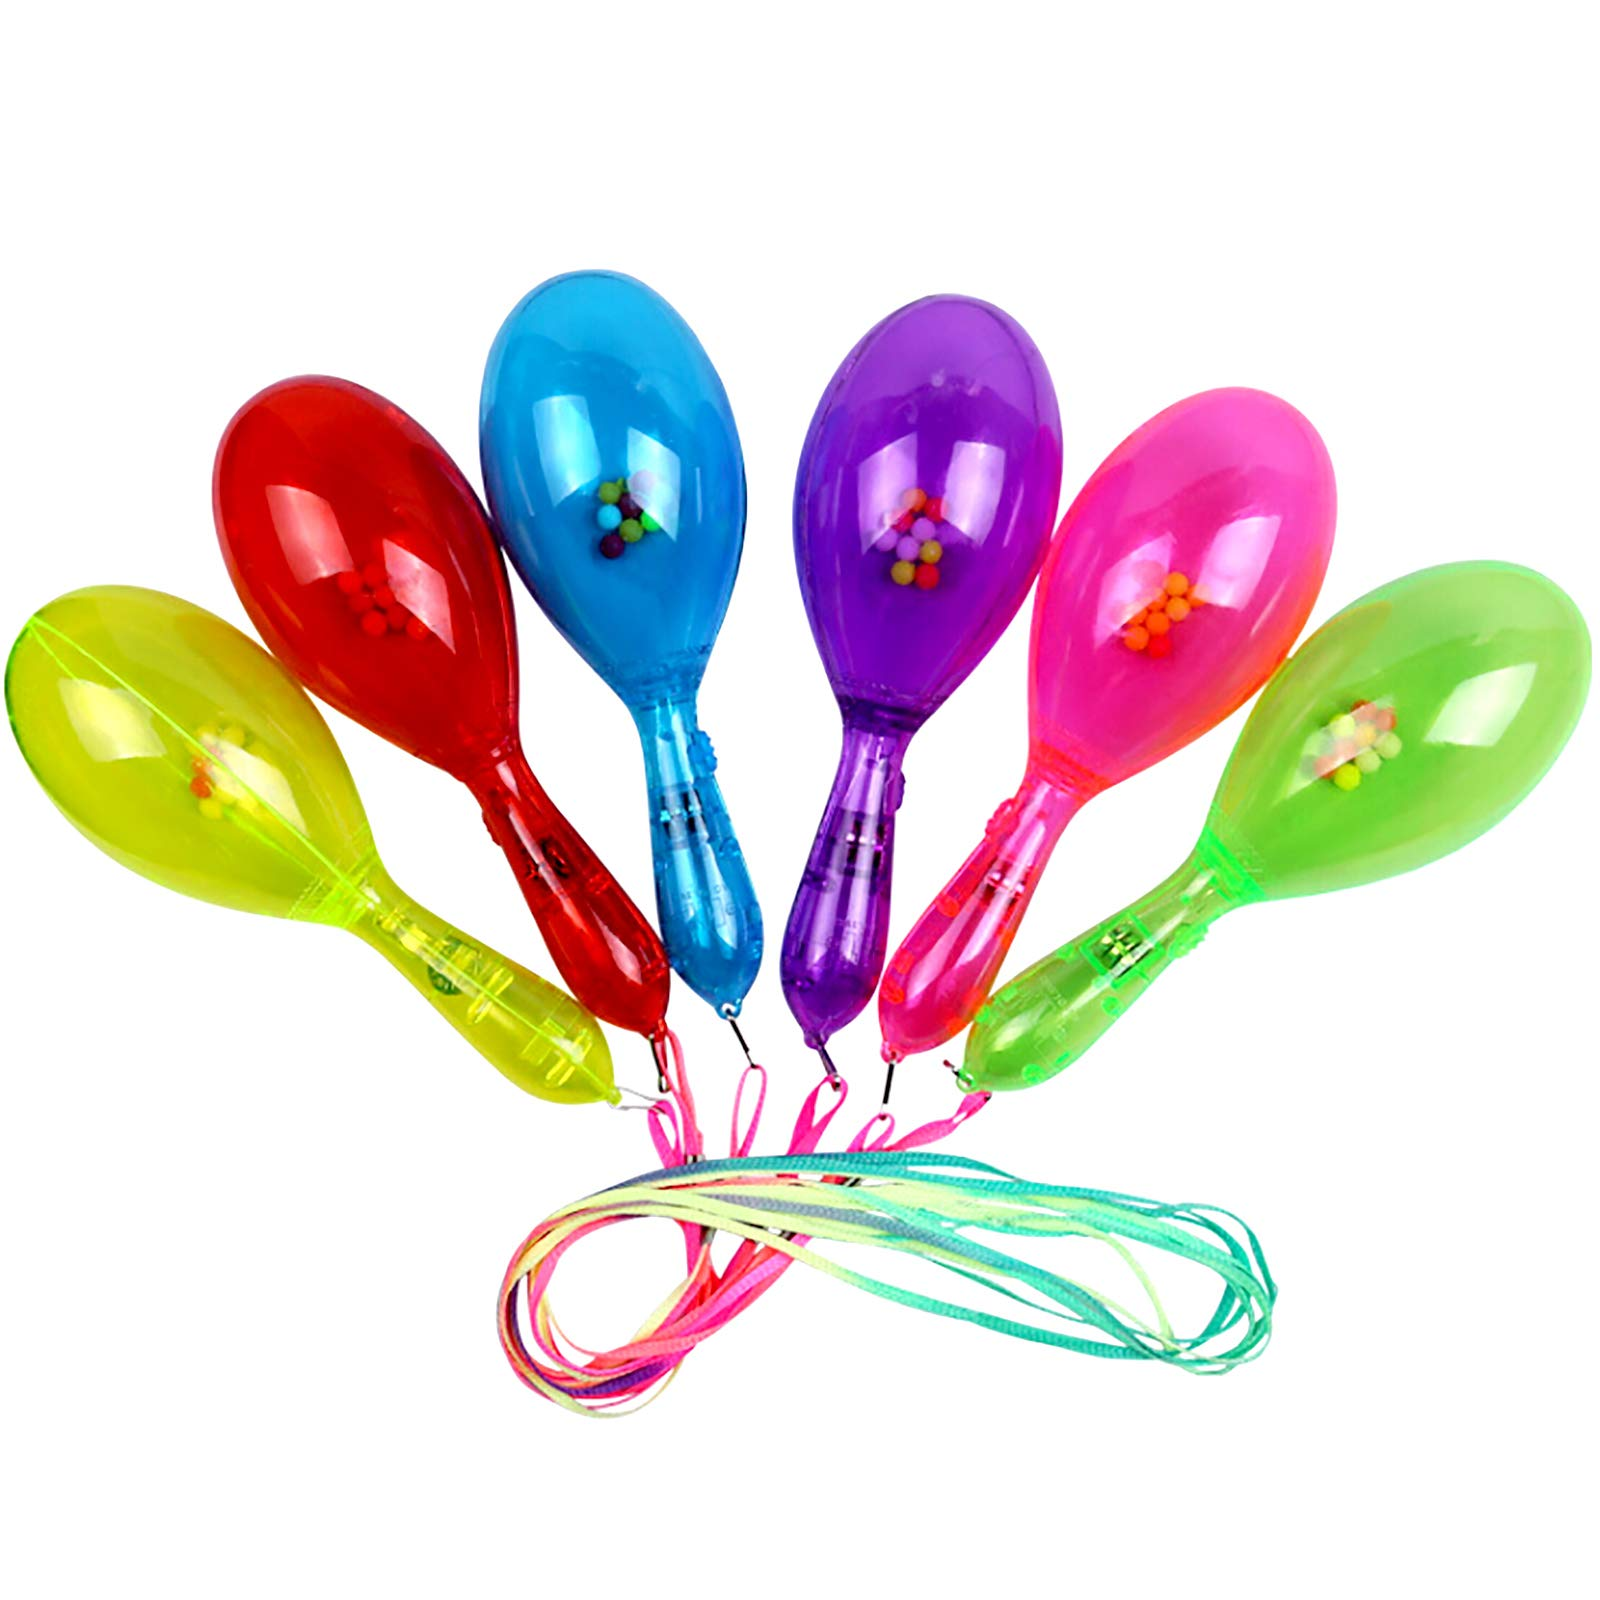 Fansport 12PCS Party Rattle Creative LED Glowing Cheering Plastic Maraca Musical Toy Wedding Party Favor with Lanyard for Kids